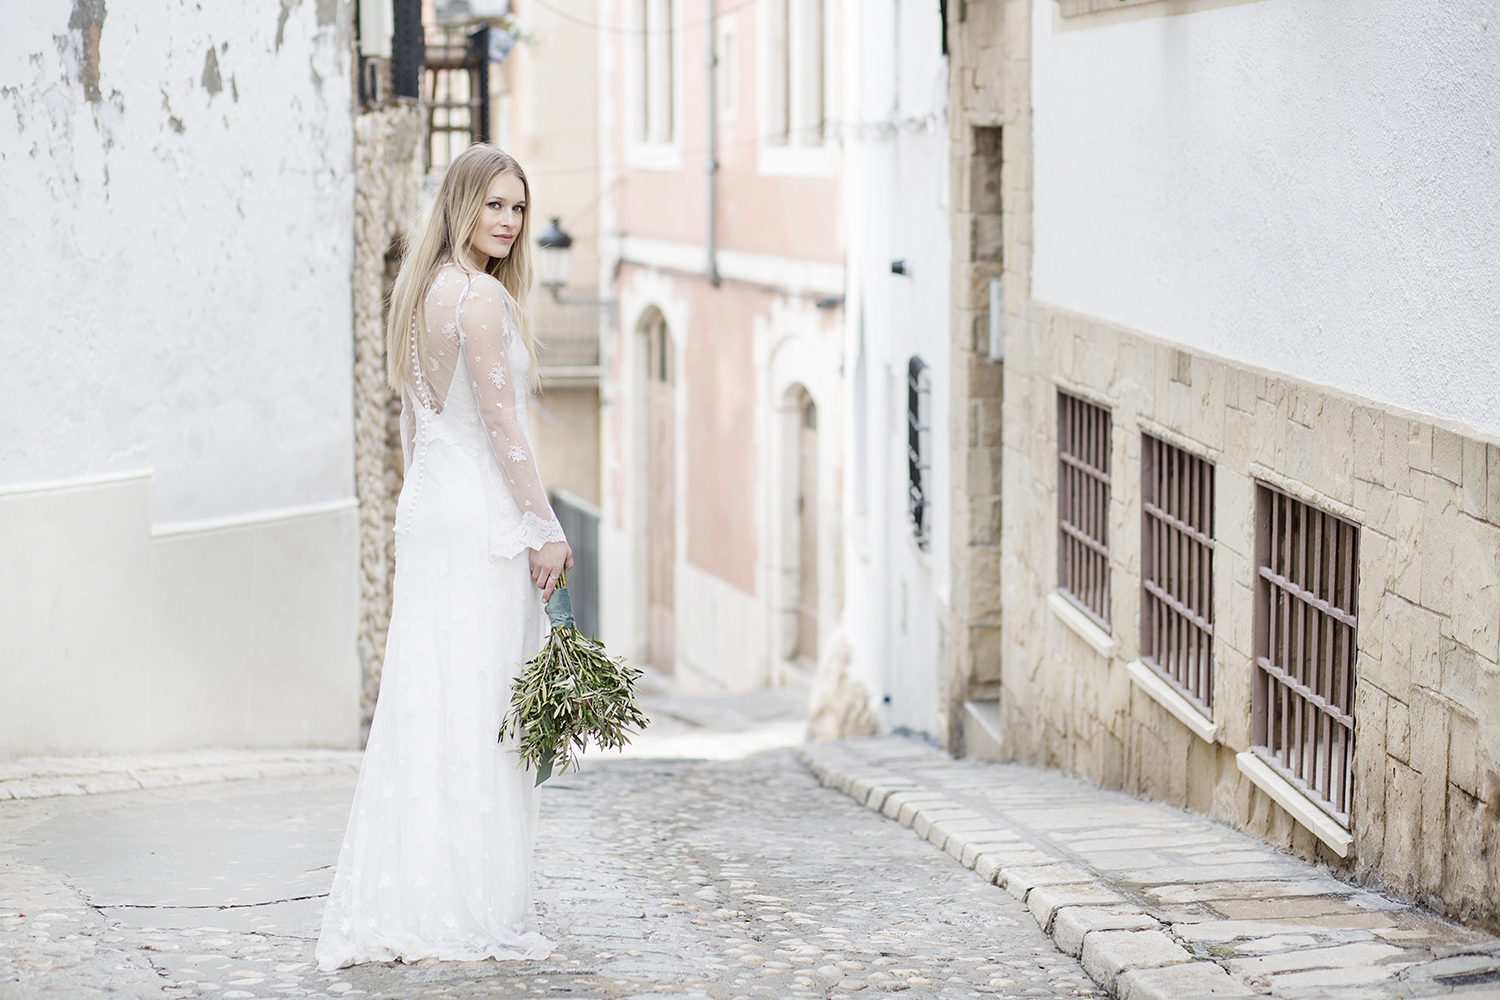 Barcelona wedding photogtapher